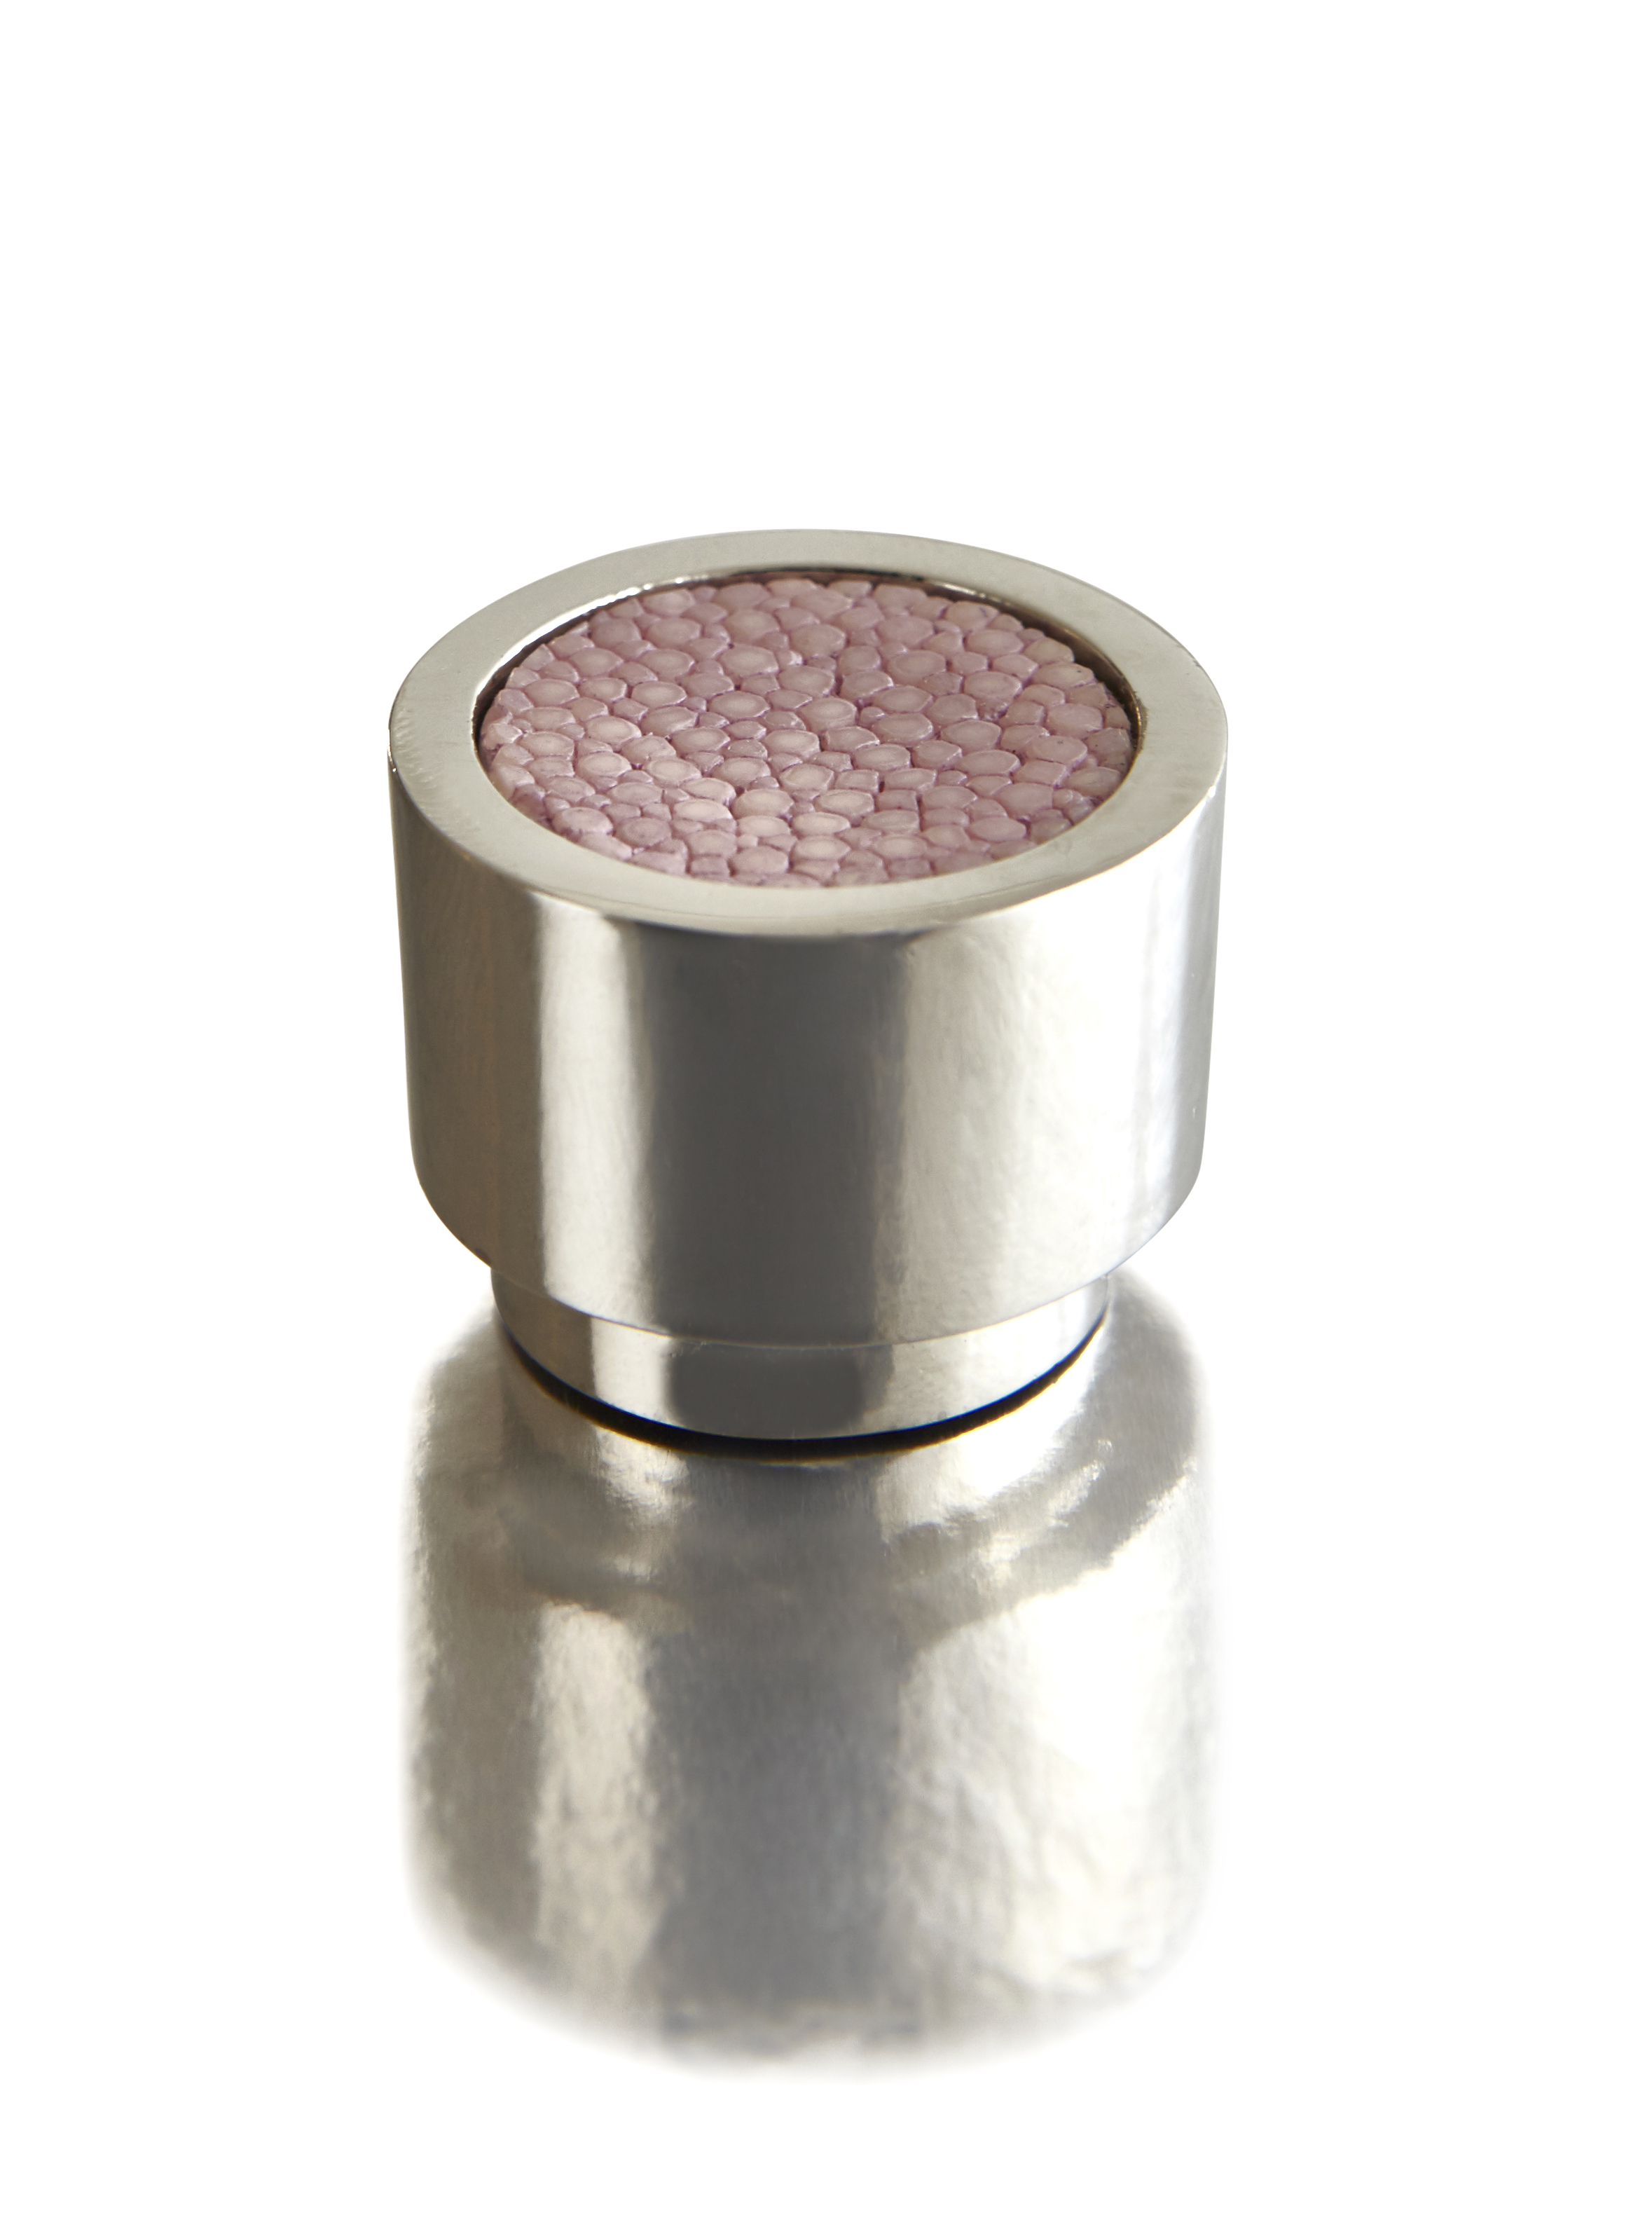 CAVIAR DIAL I ROSE PETAL I CAVIAR  Polished Nickel & Shagreen